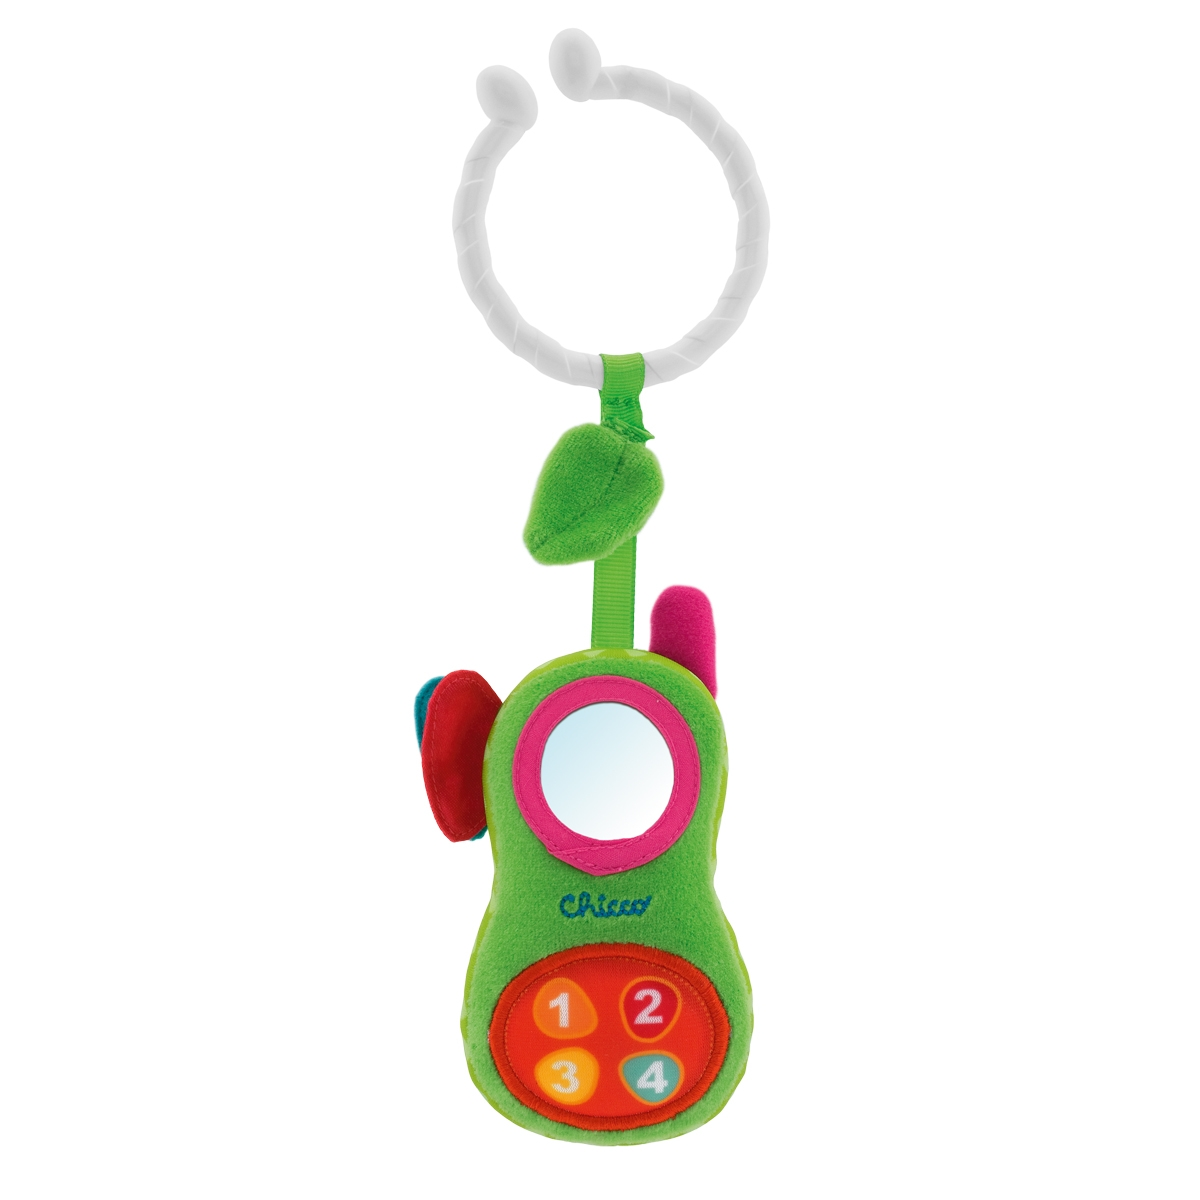 CHICCO___________5059a17401cd5